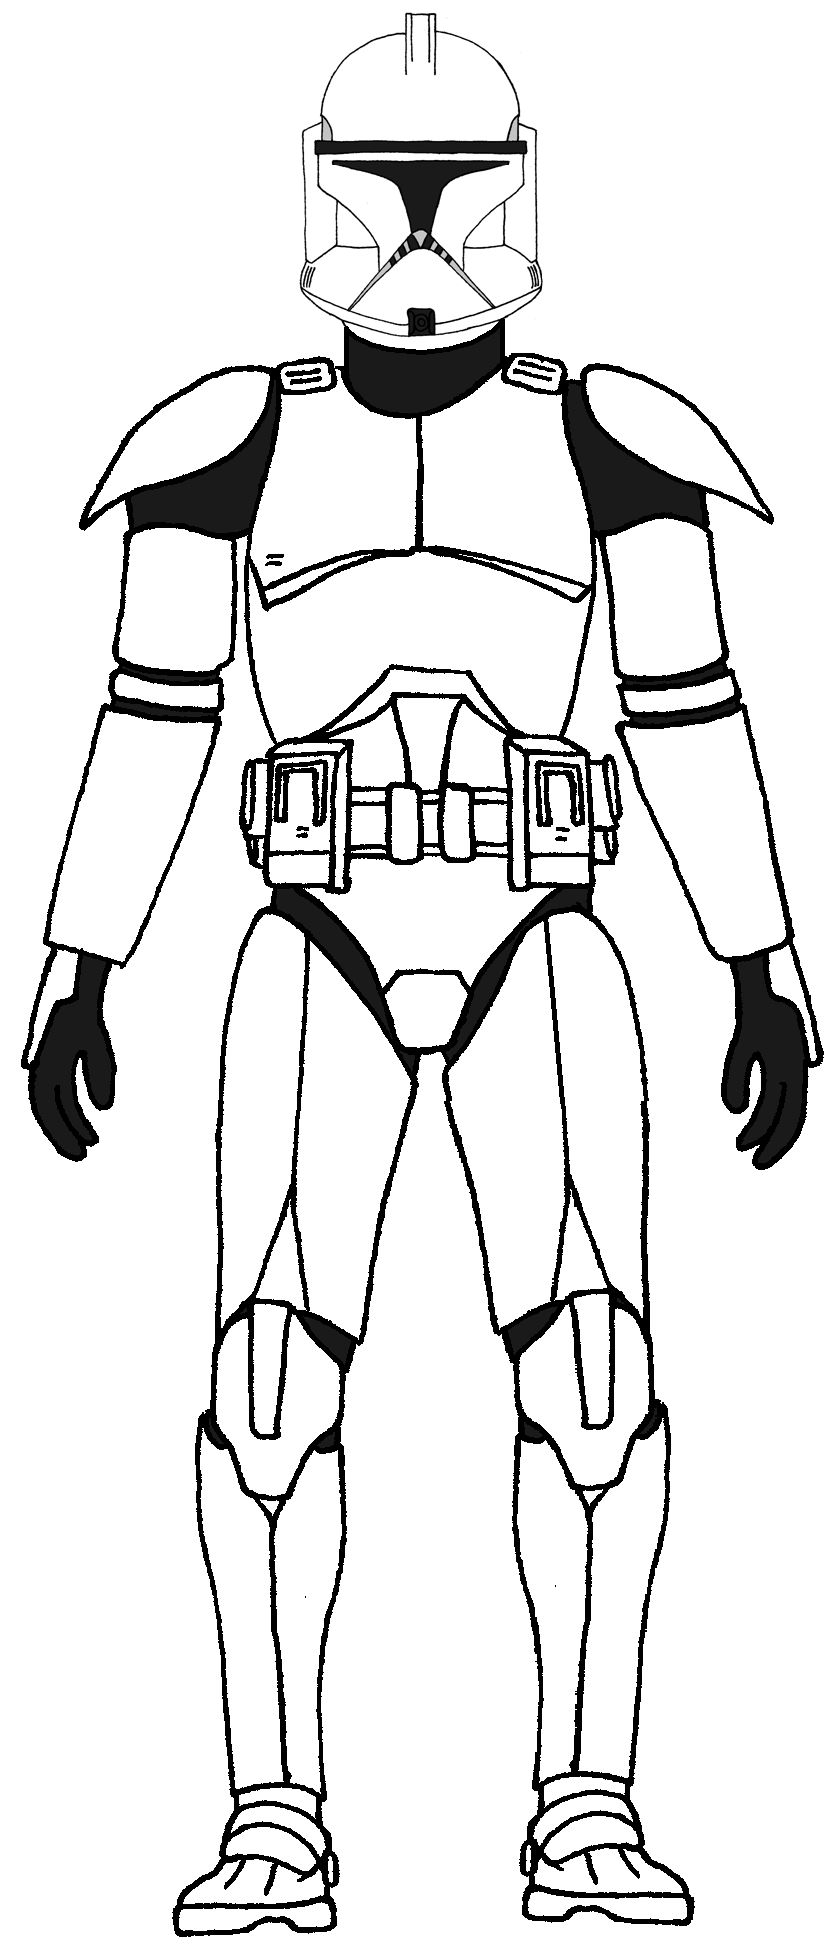 Free clone trooper coloring pages - Star Wars Color In Papers